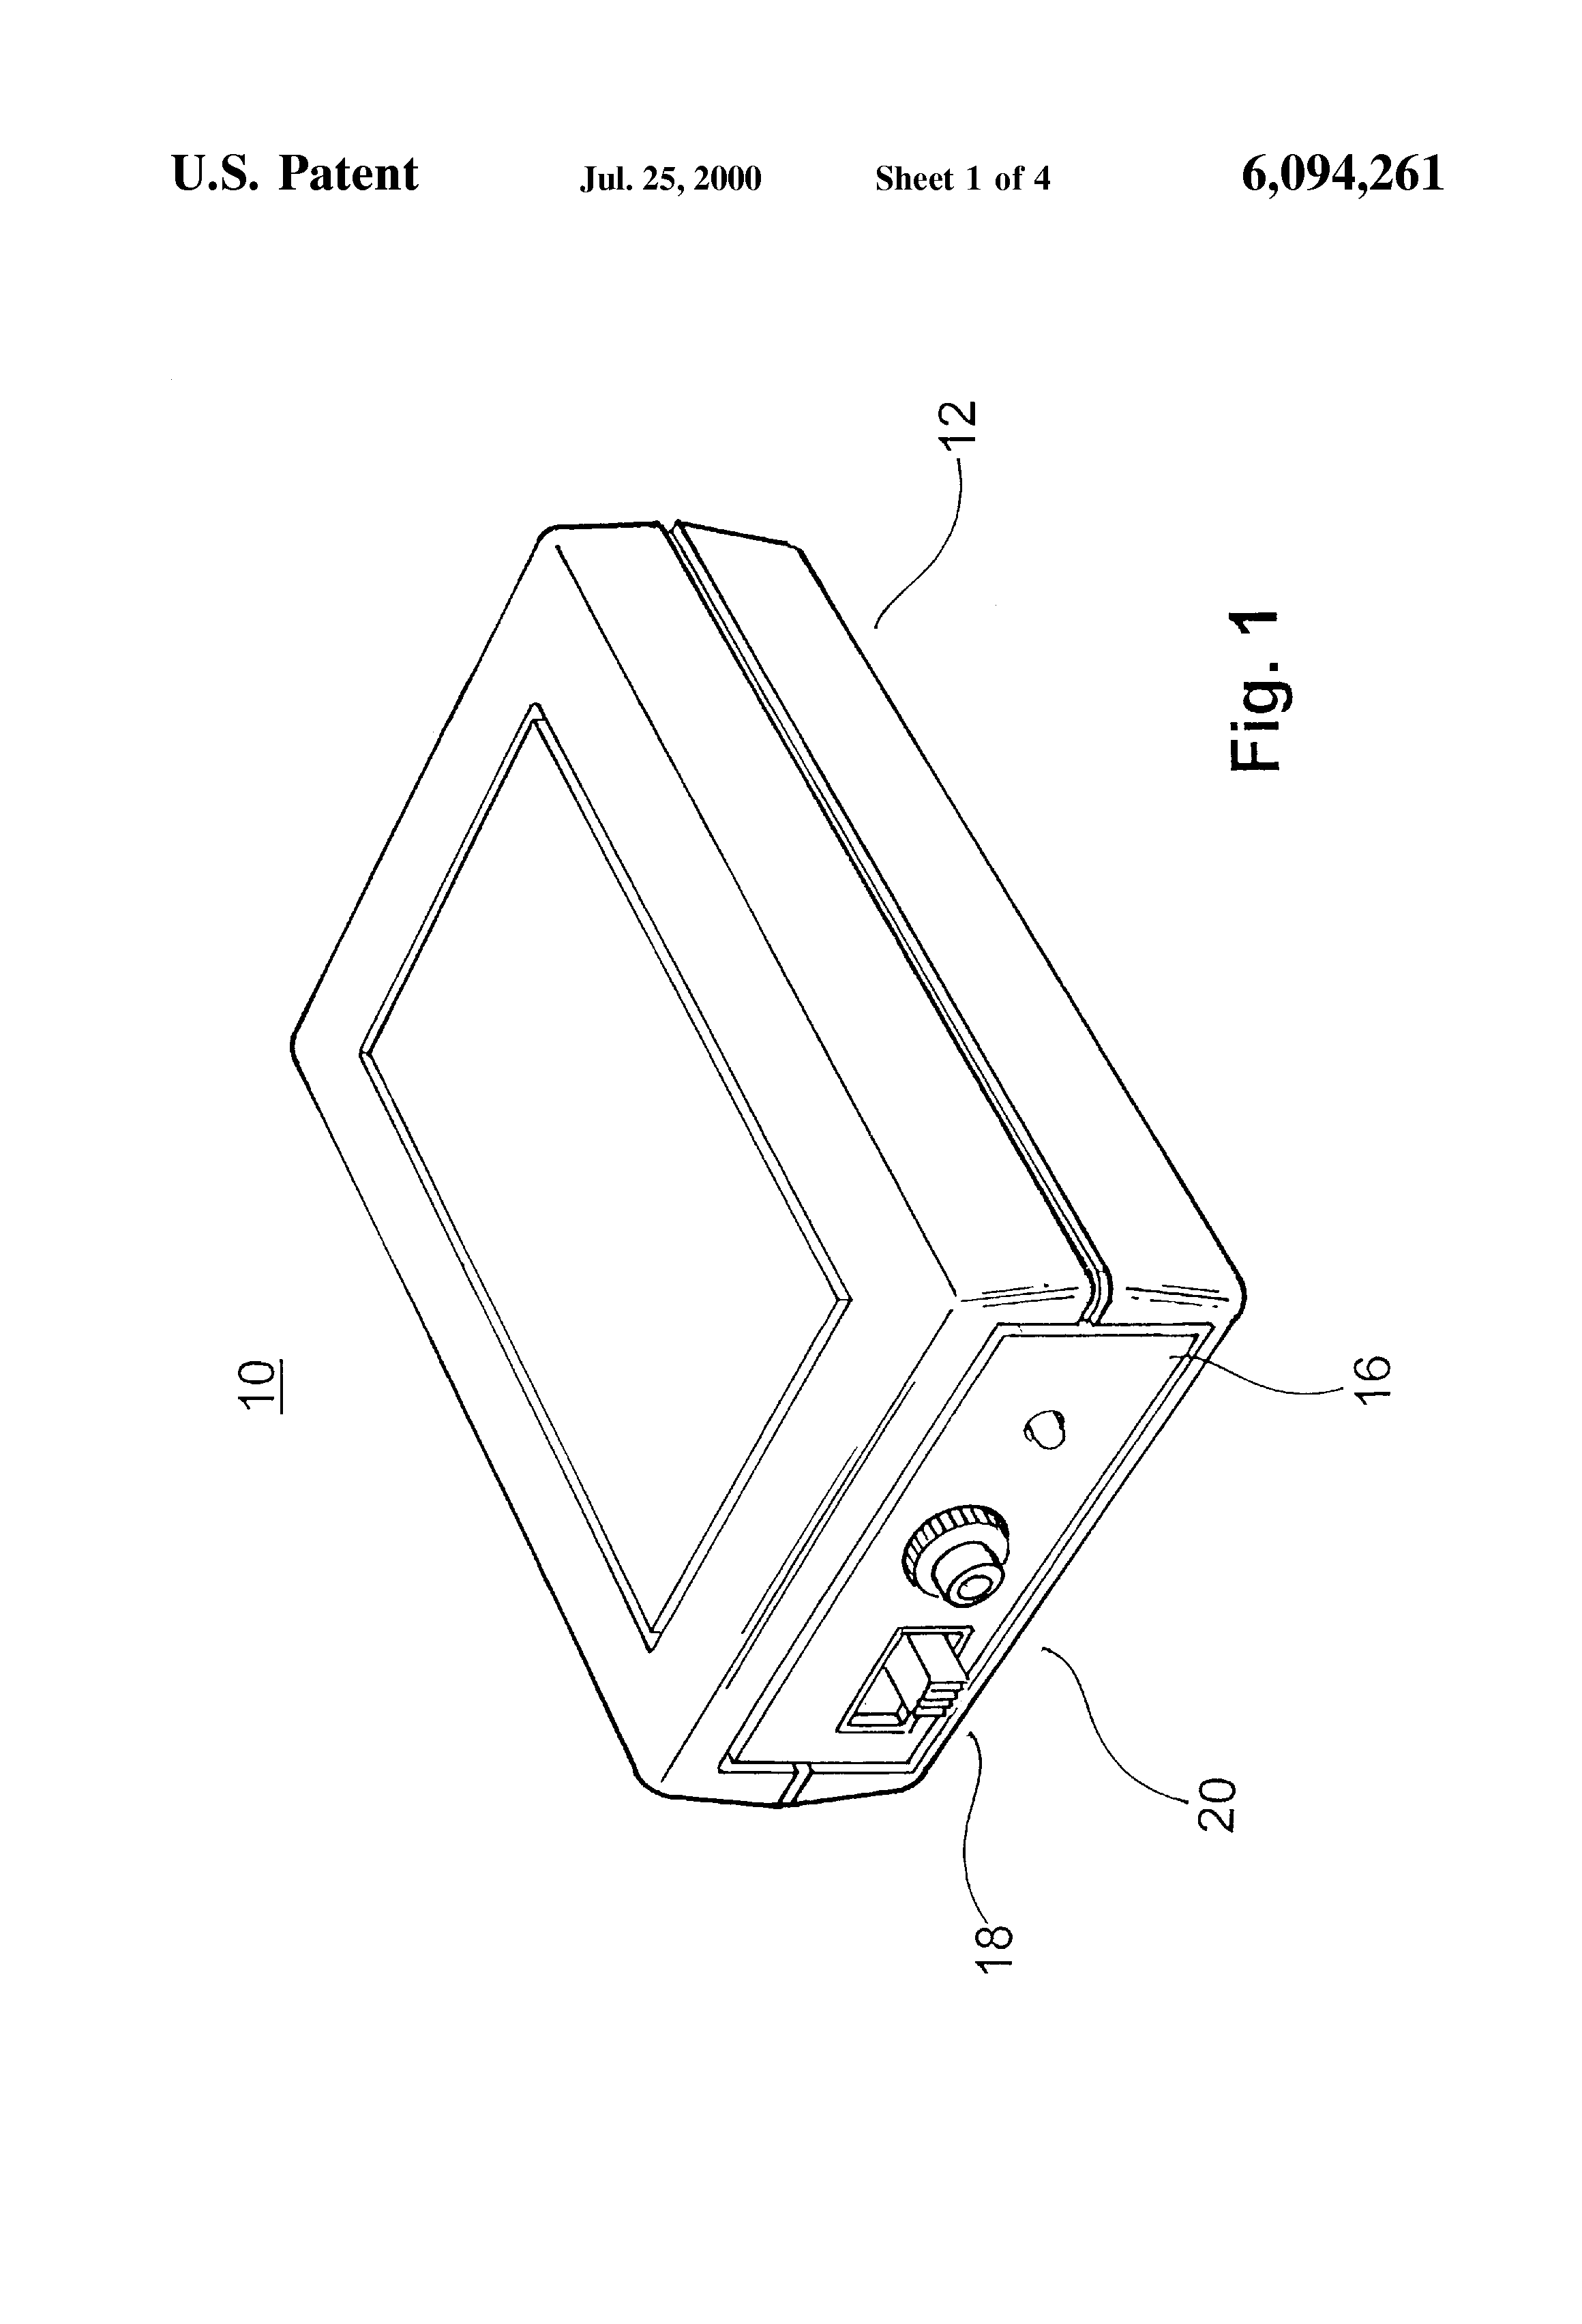 Apparatus And Method For Installing Cable : Patent us method and apparatus for distinguishing